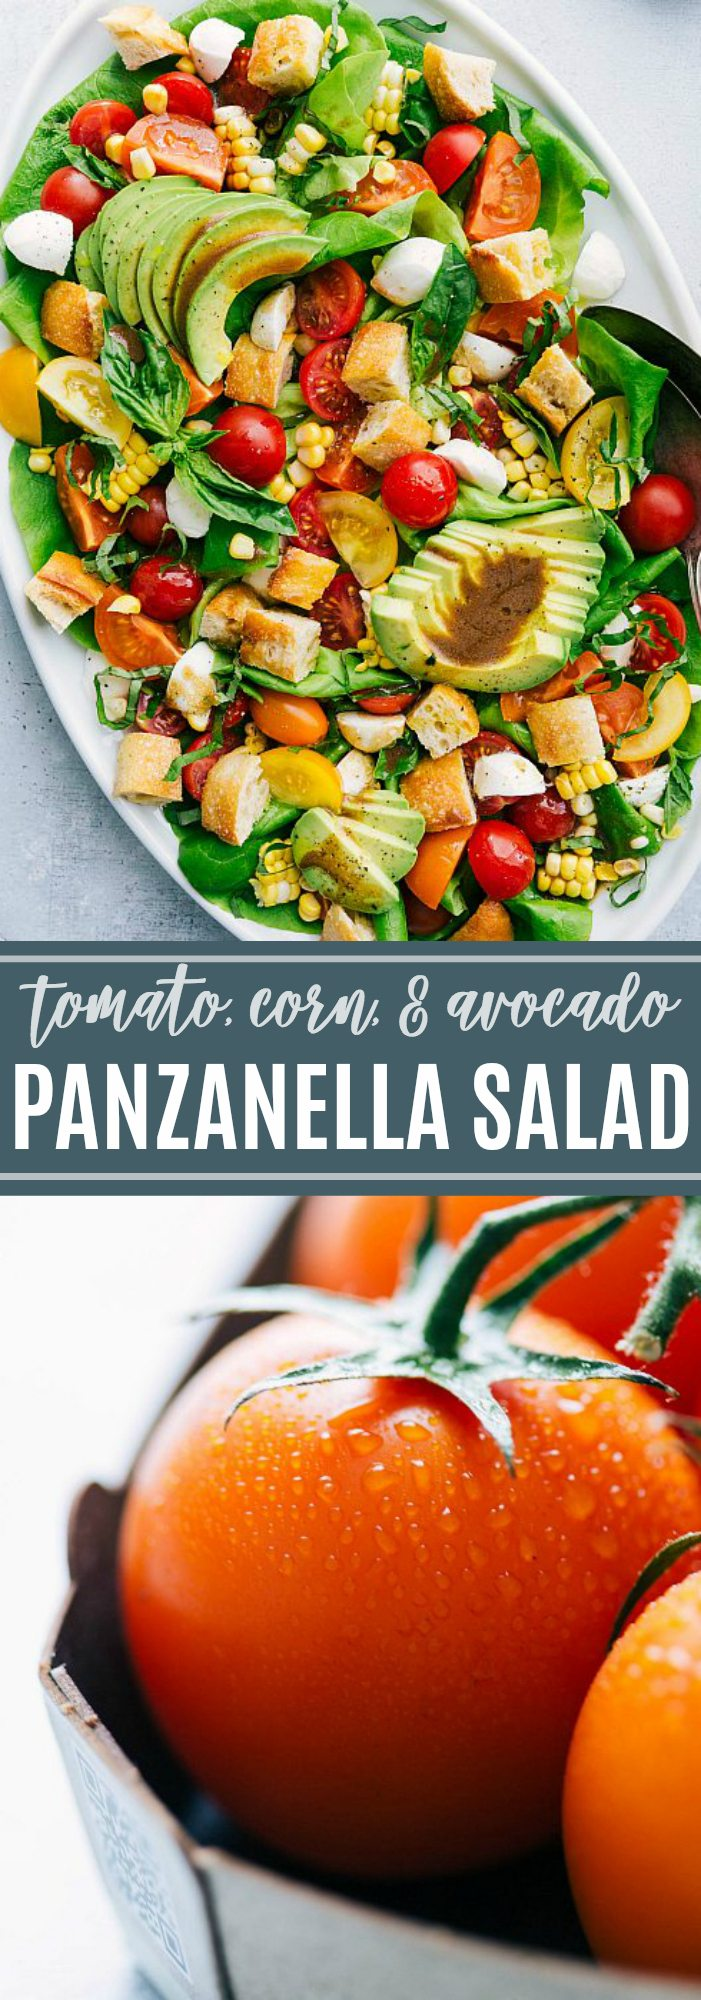 The best simple panzanella salad with lots of fresh veggies and a delicious balsamic dressing chelseasmessyapron.com #salad #panzanella #tomato #corn #basil #avocado #bread #sourdough #balsamic #dressing #healthy #easy #kidfriendly #quick #dinner